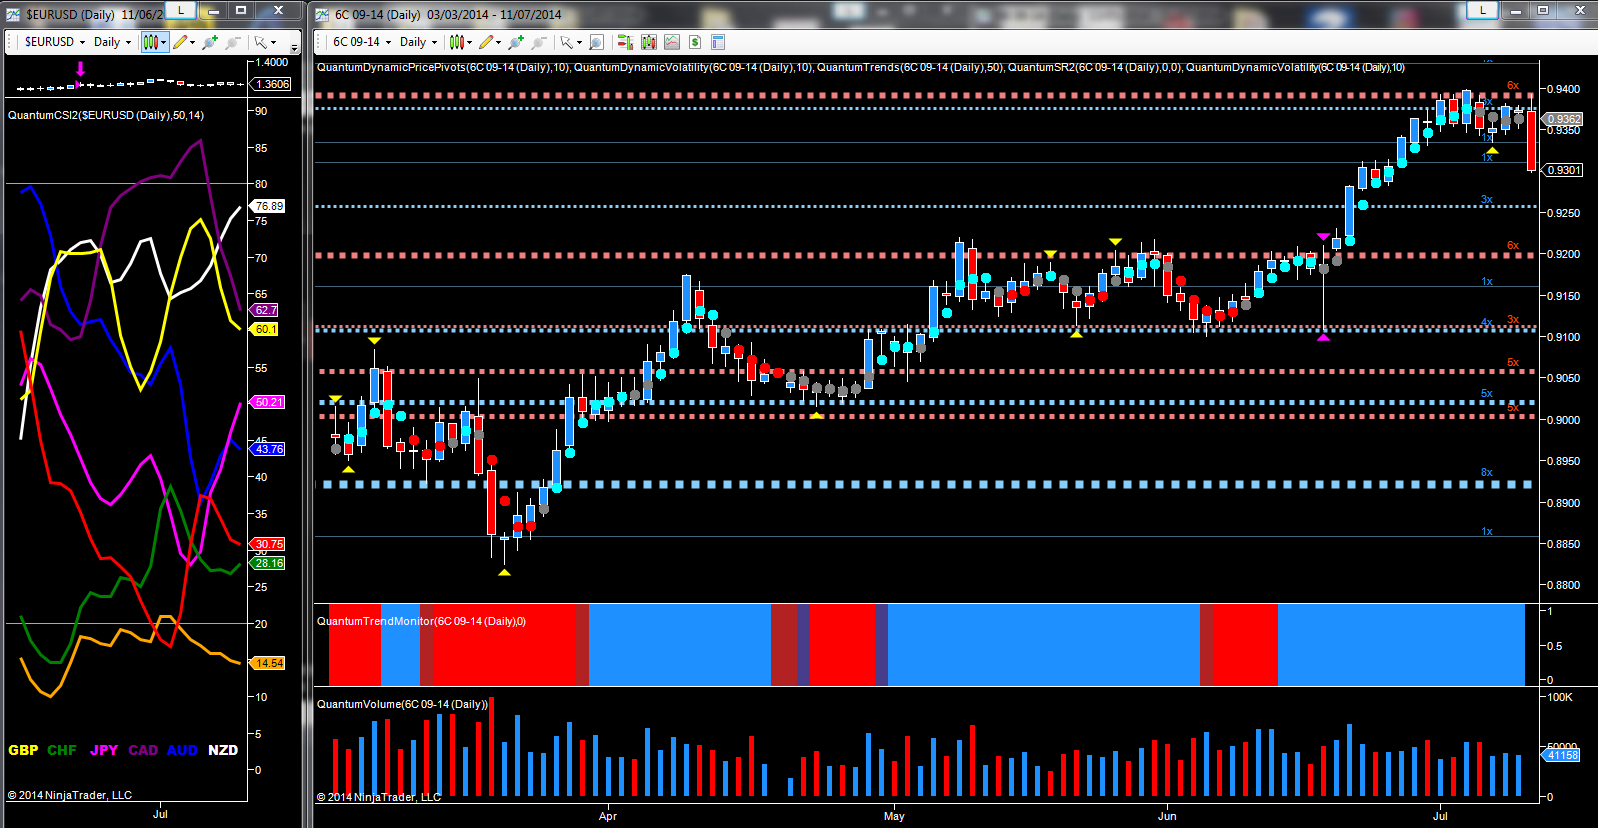 September currency futures - CAD/USD daily chart